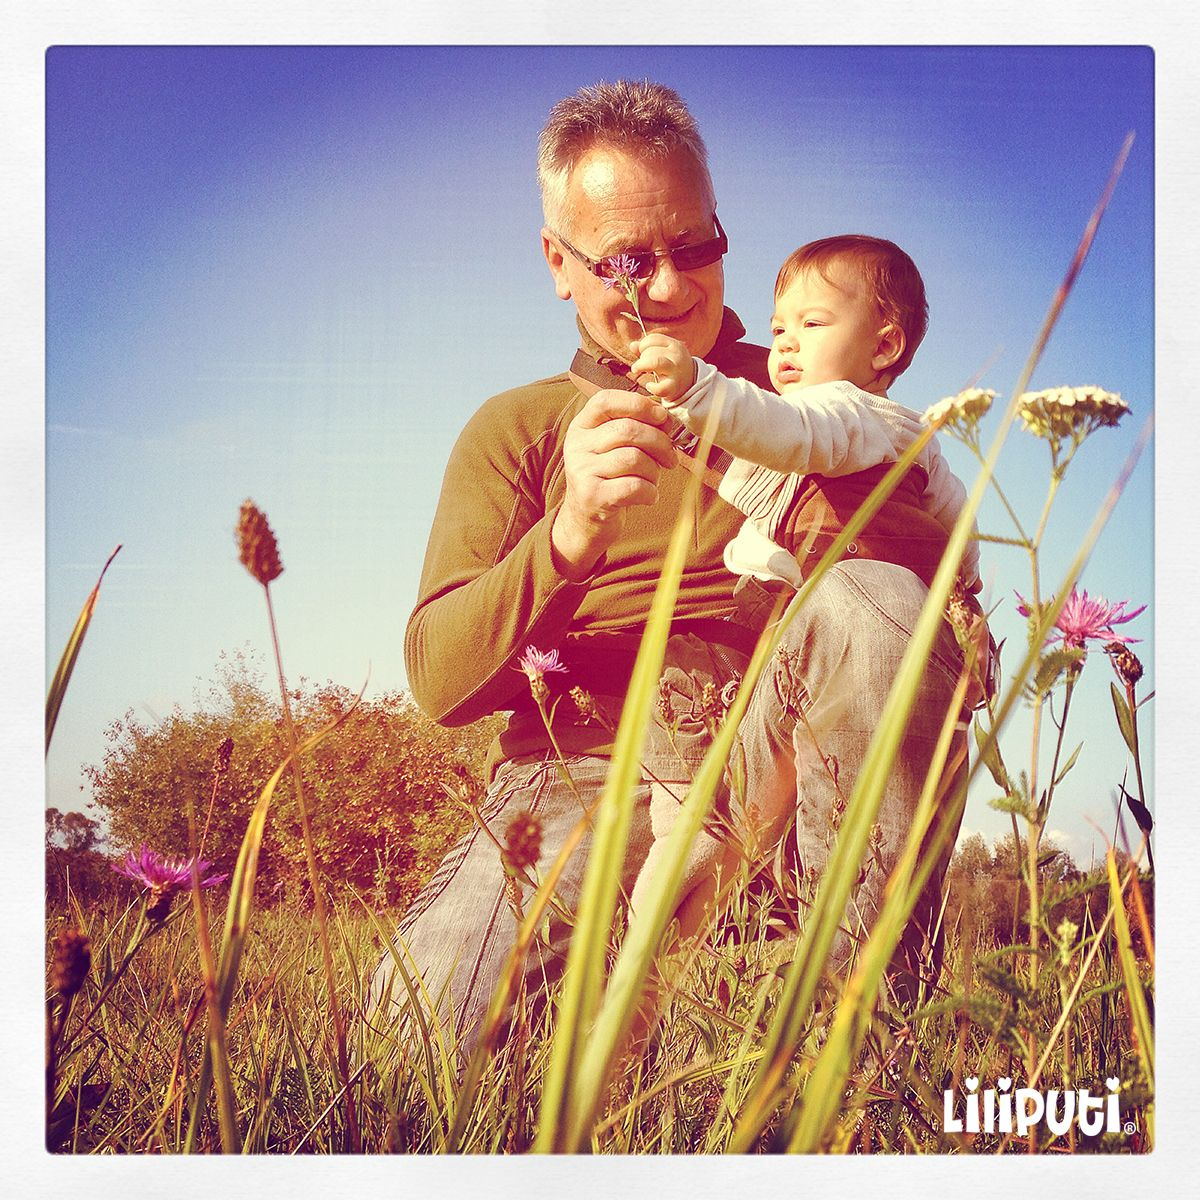 Grandpa Loves Babywearing  #babywearing #grandfather #liliputistlye #ssc